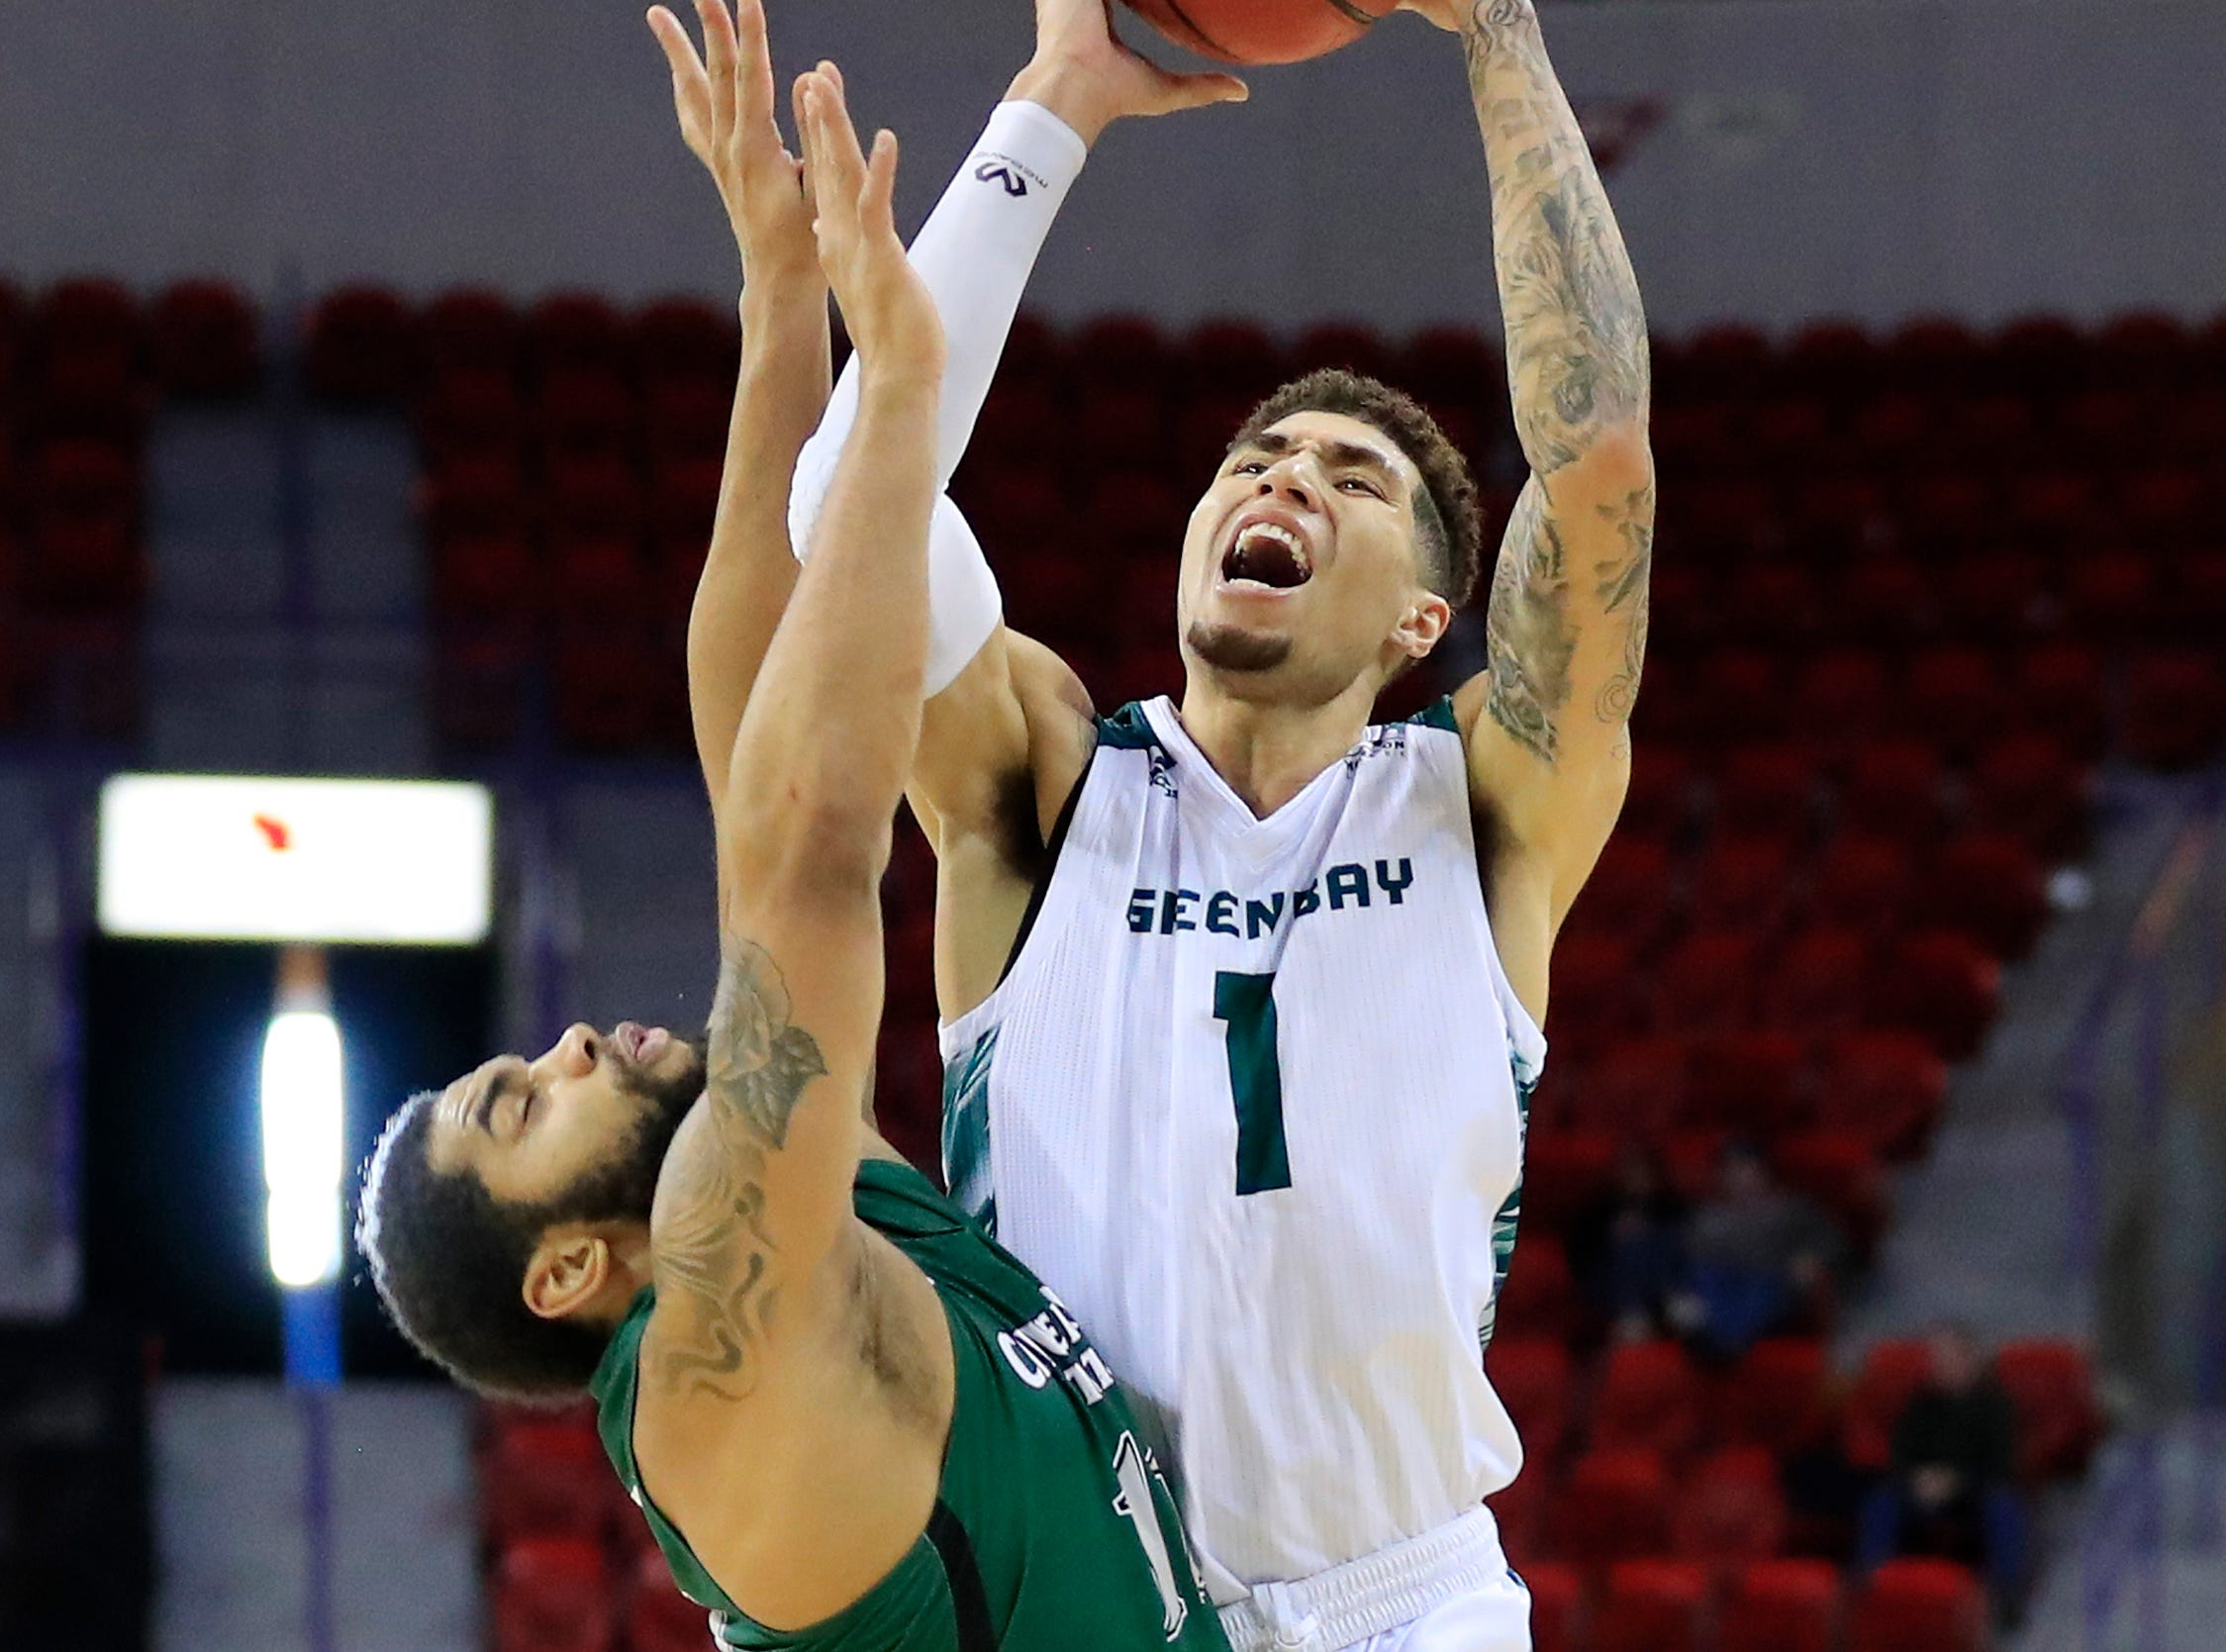 Green Bay Phoenix guard Sandy Cohen III (1) gets fouled by Cleveland State Vikings guard Dontel Highsmith (11) while shooting a three in a Horizon League basketball game at the Resch Center on Saturday, January 5, 2019 in Green Bay, Wis.